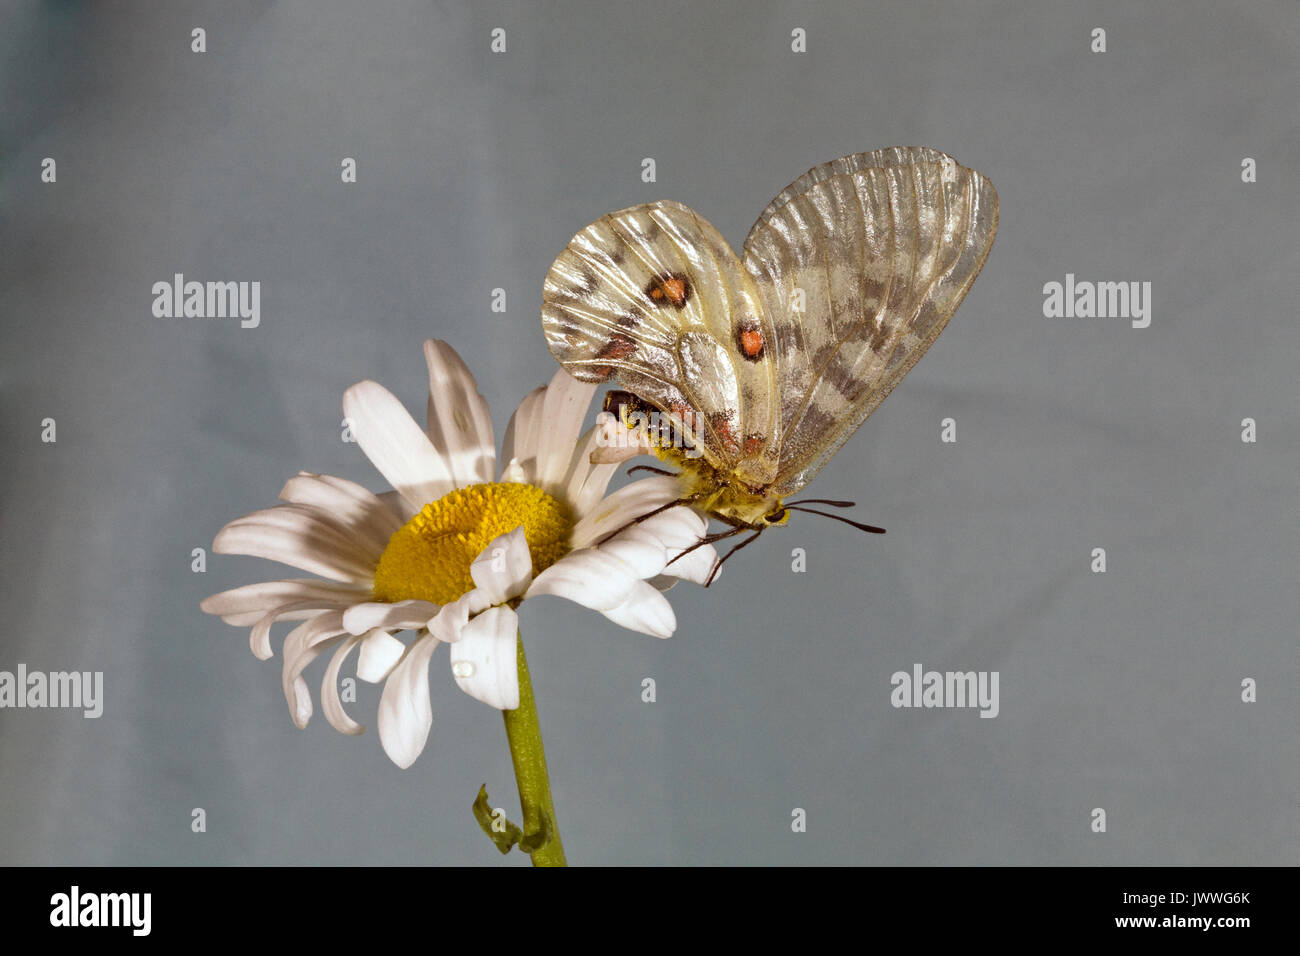 A female Clodius Parnassian butterfly resting on an ox-eye daisy. The whitish structure on her abdomen is a sphragis, a mating plug deposited on her g - Stock Image